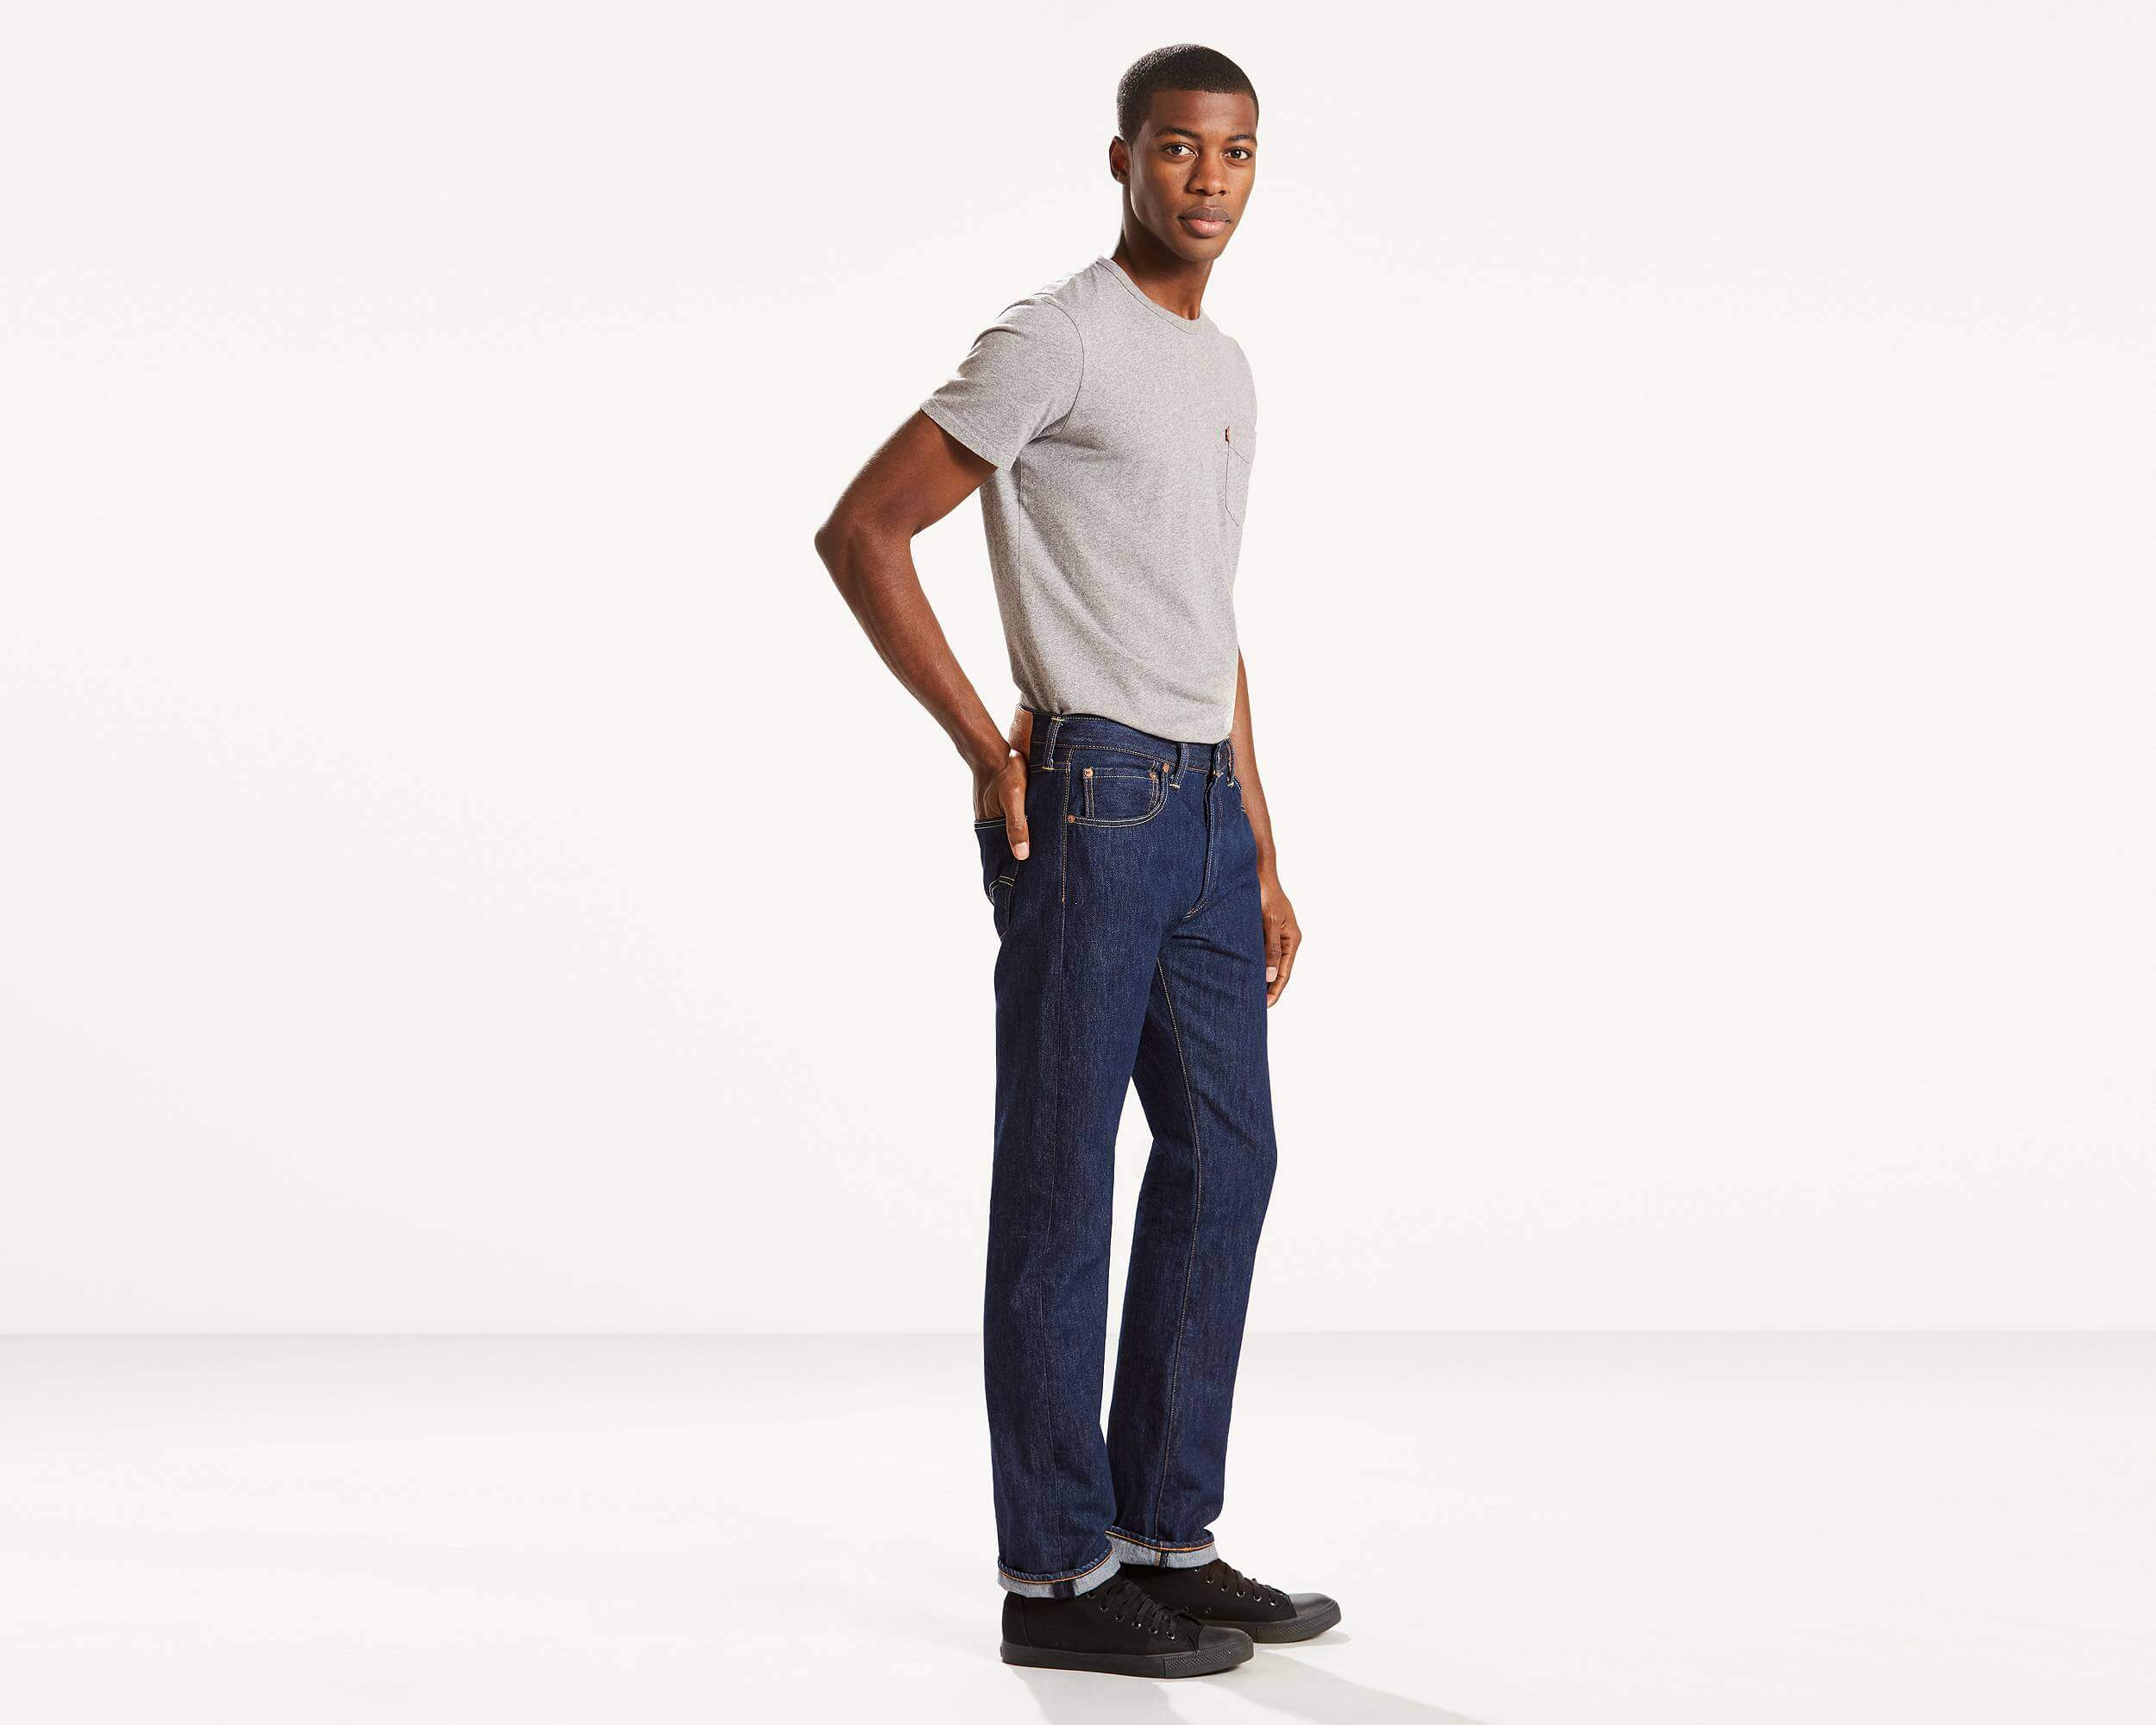 501 Made in The USA Original Fit Jean 00501-2453